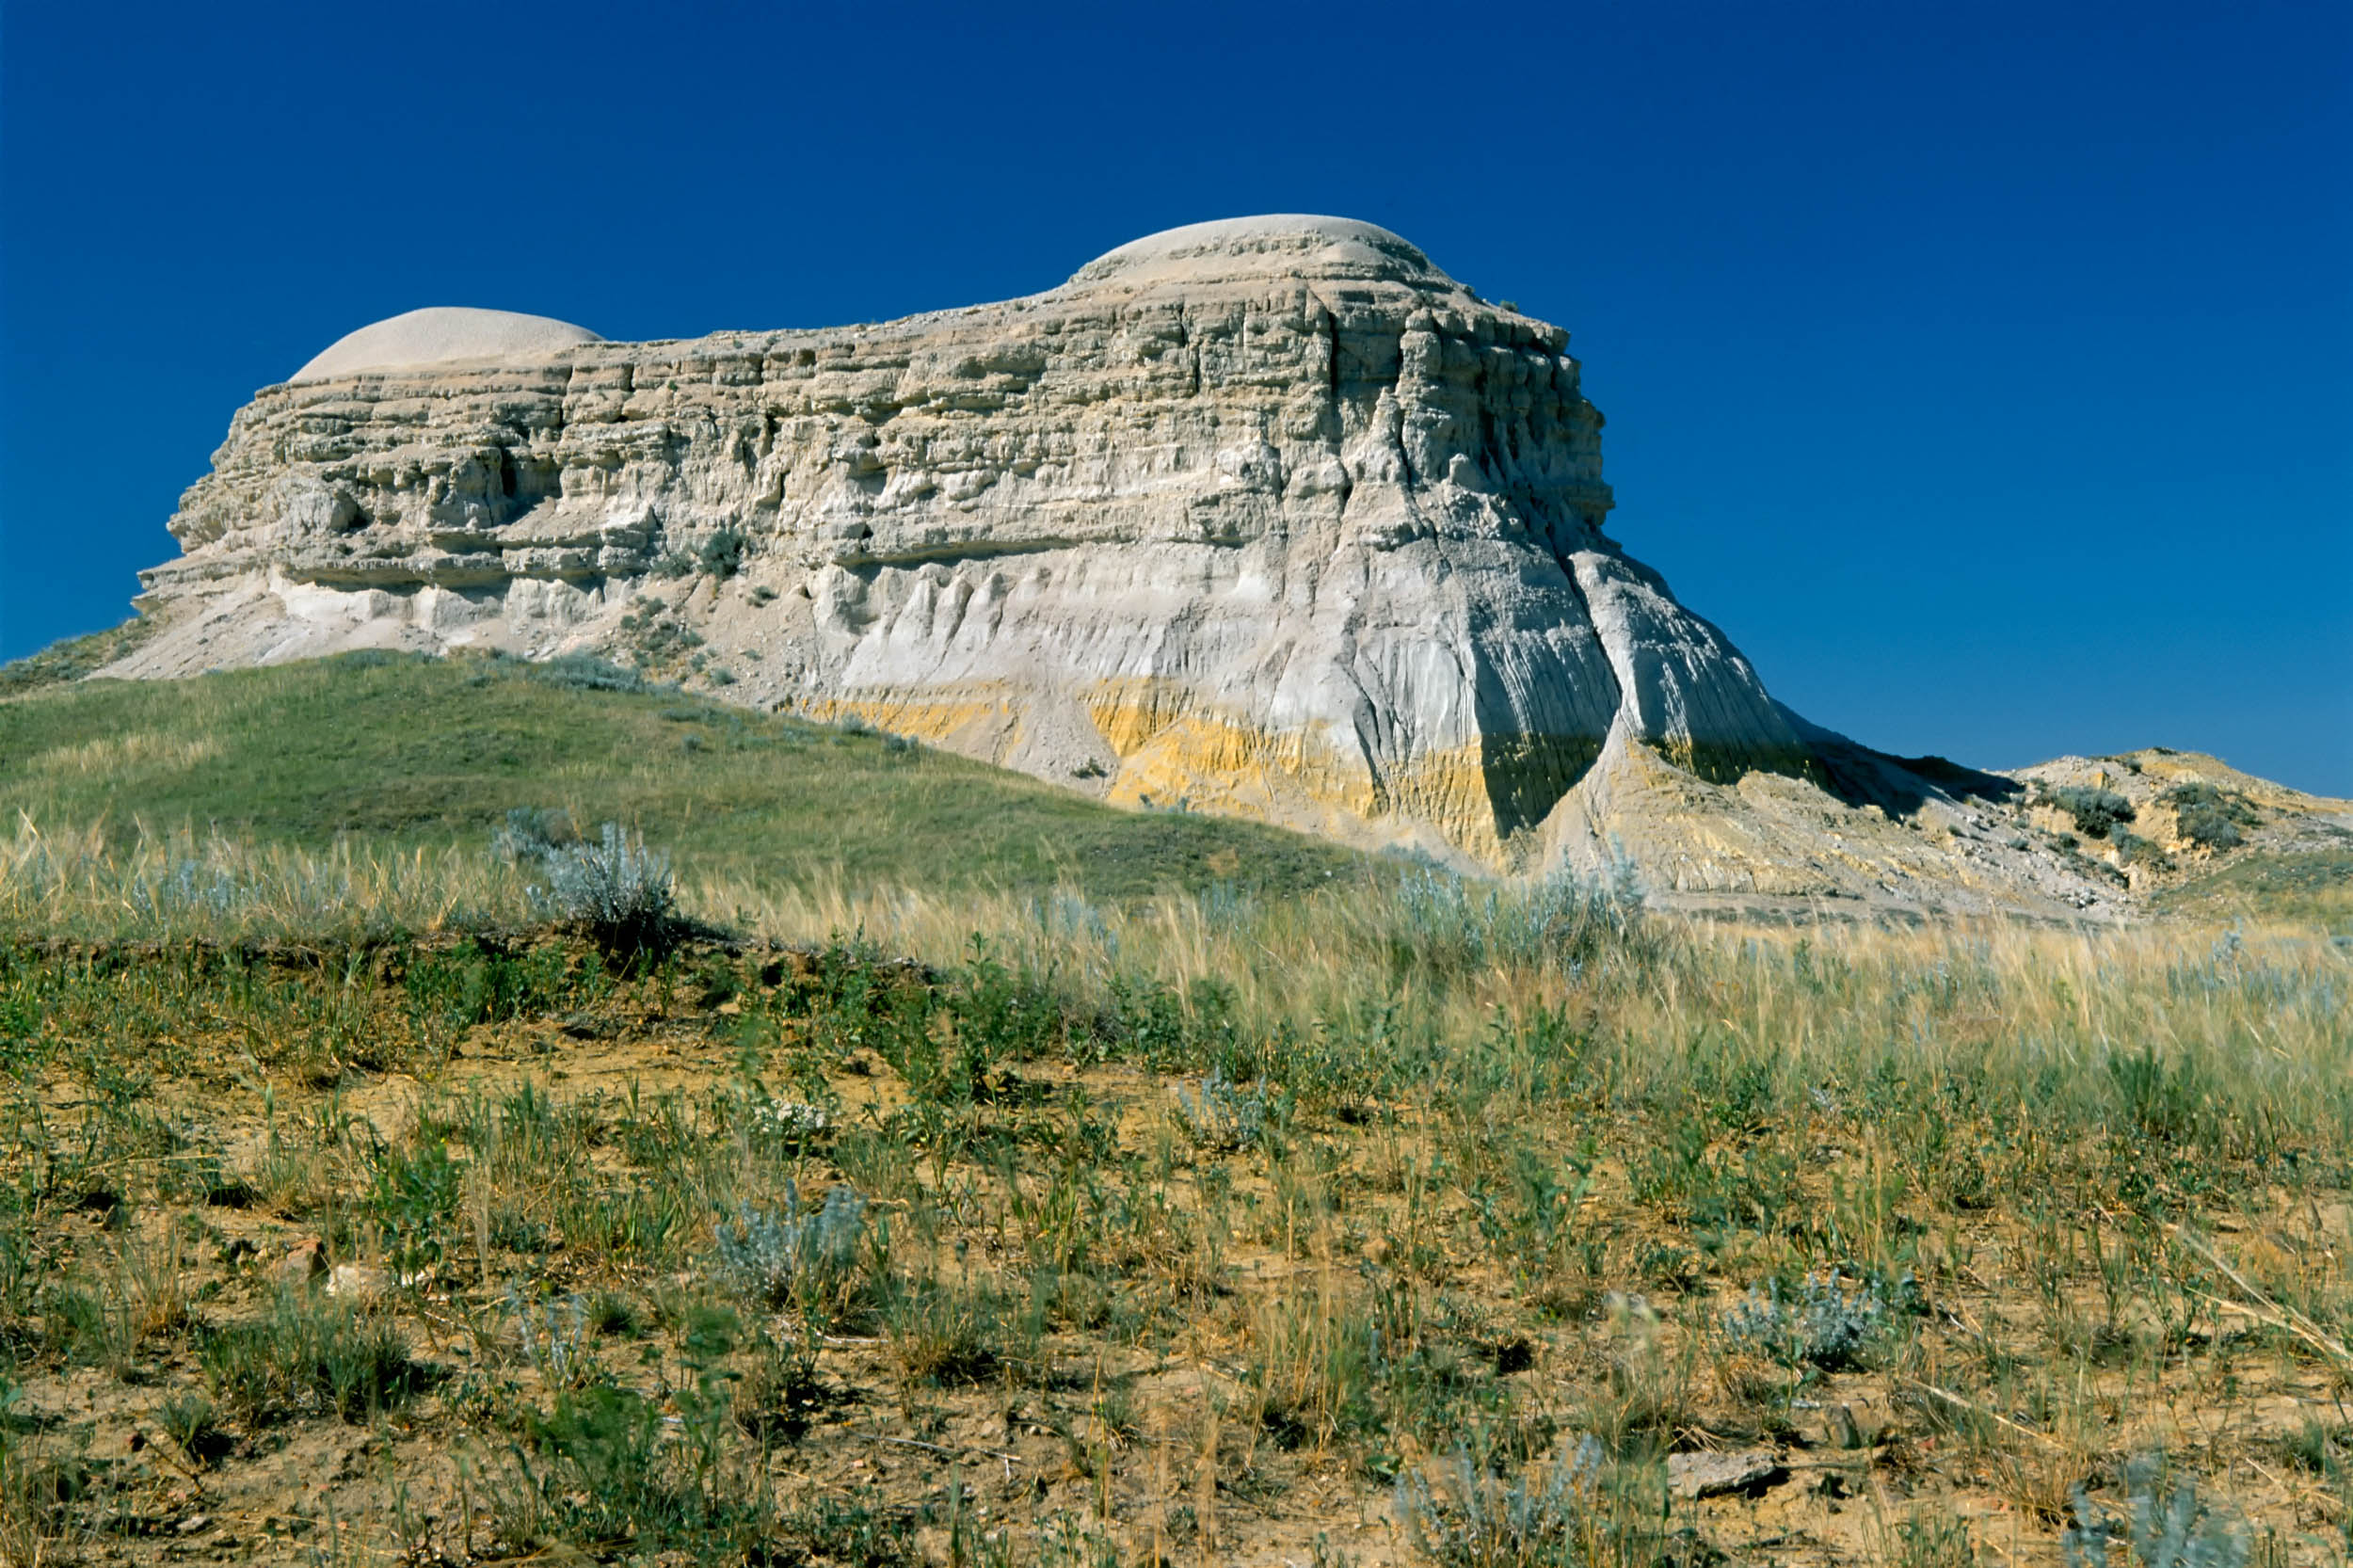 North Dakota landscapes along with other fine art is part of Silverman Be Remarkable's offering  that also includes exterior photography and business portraits.